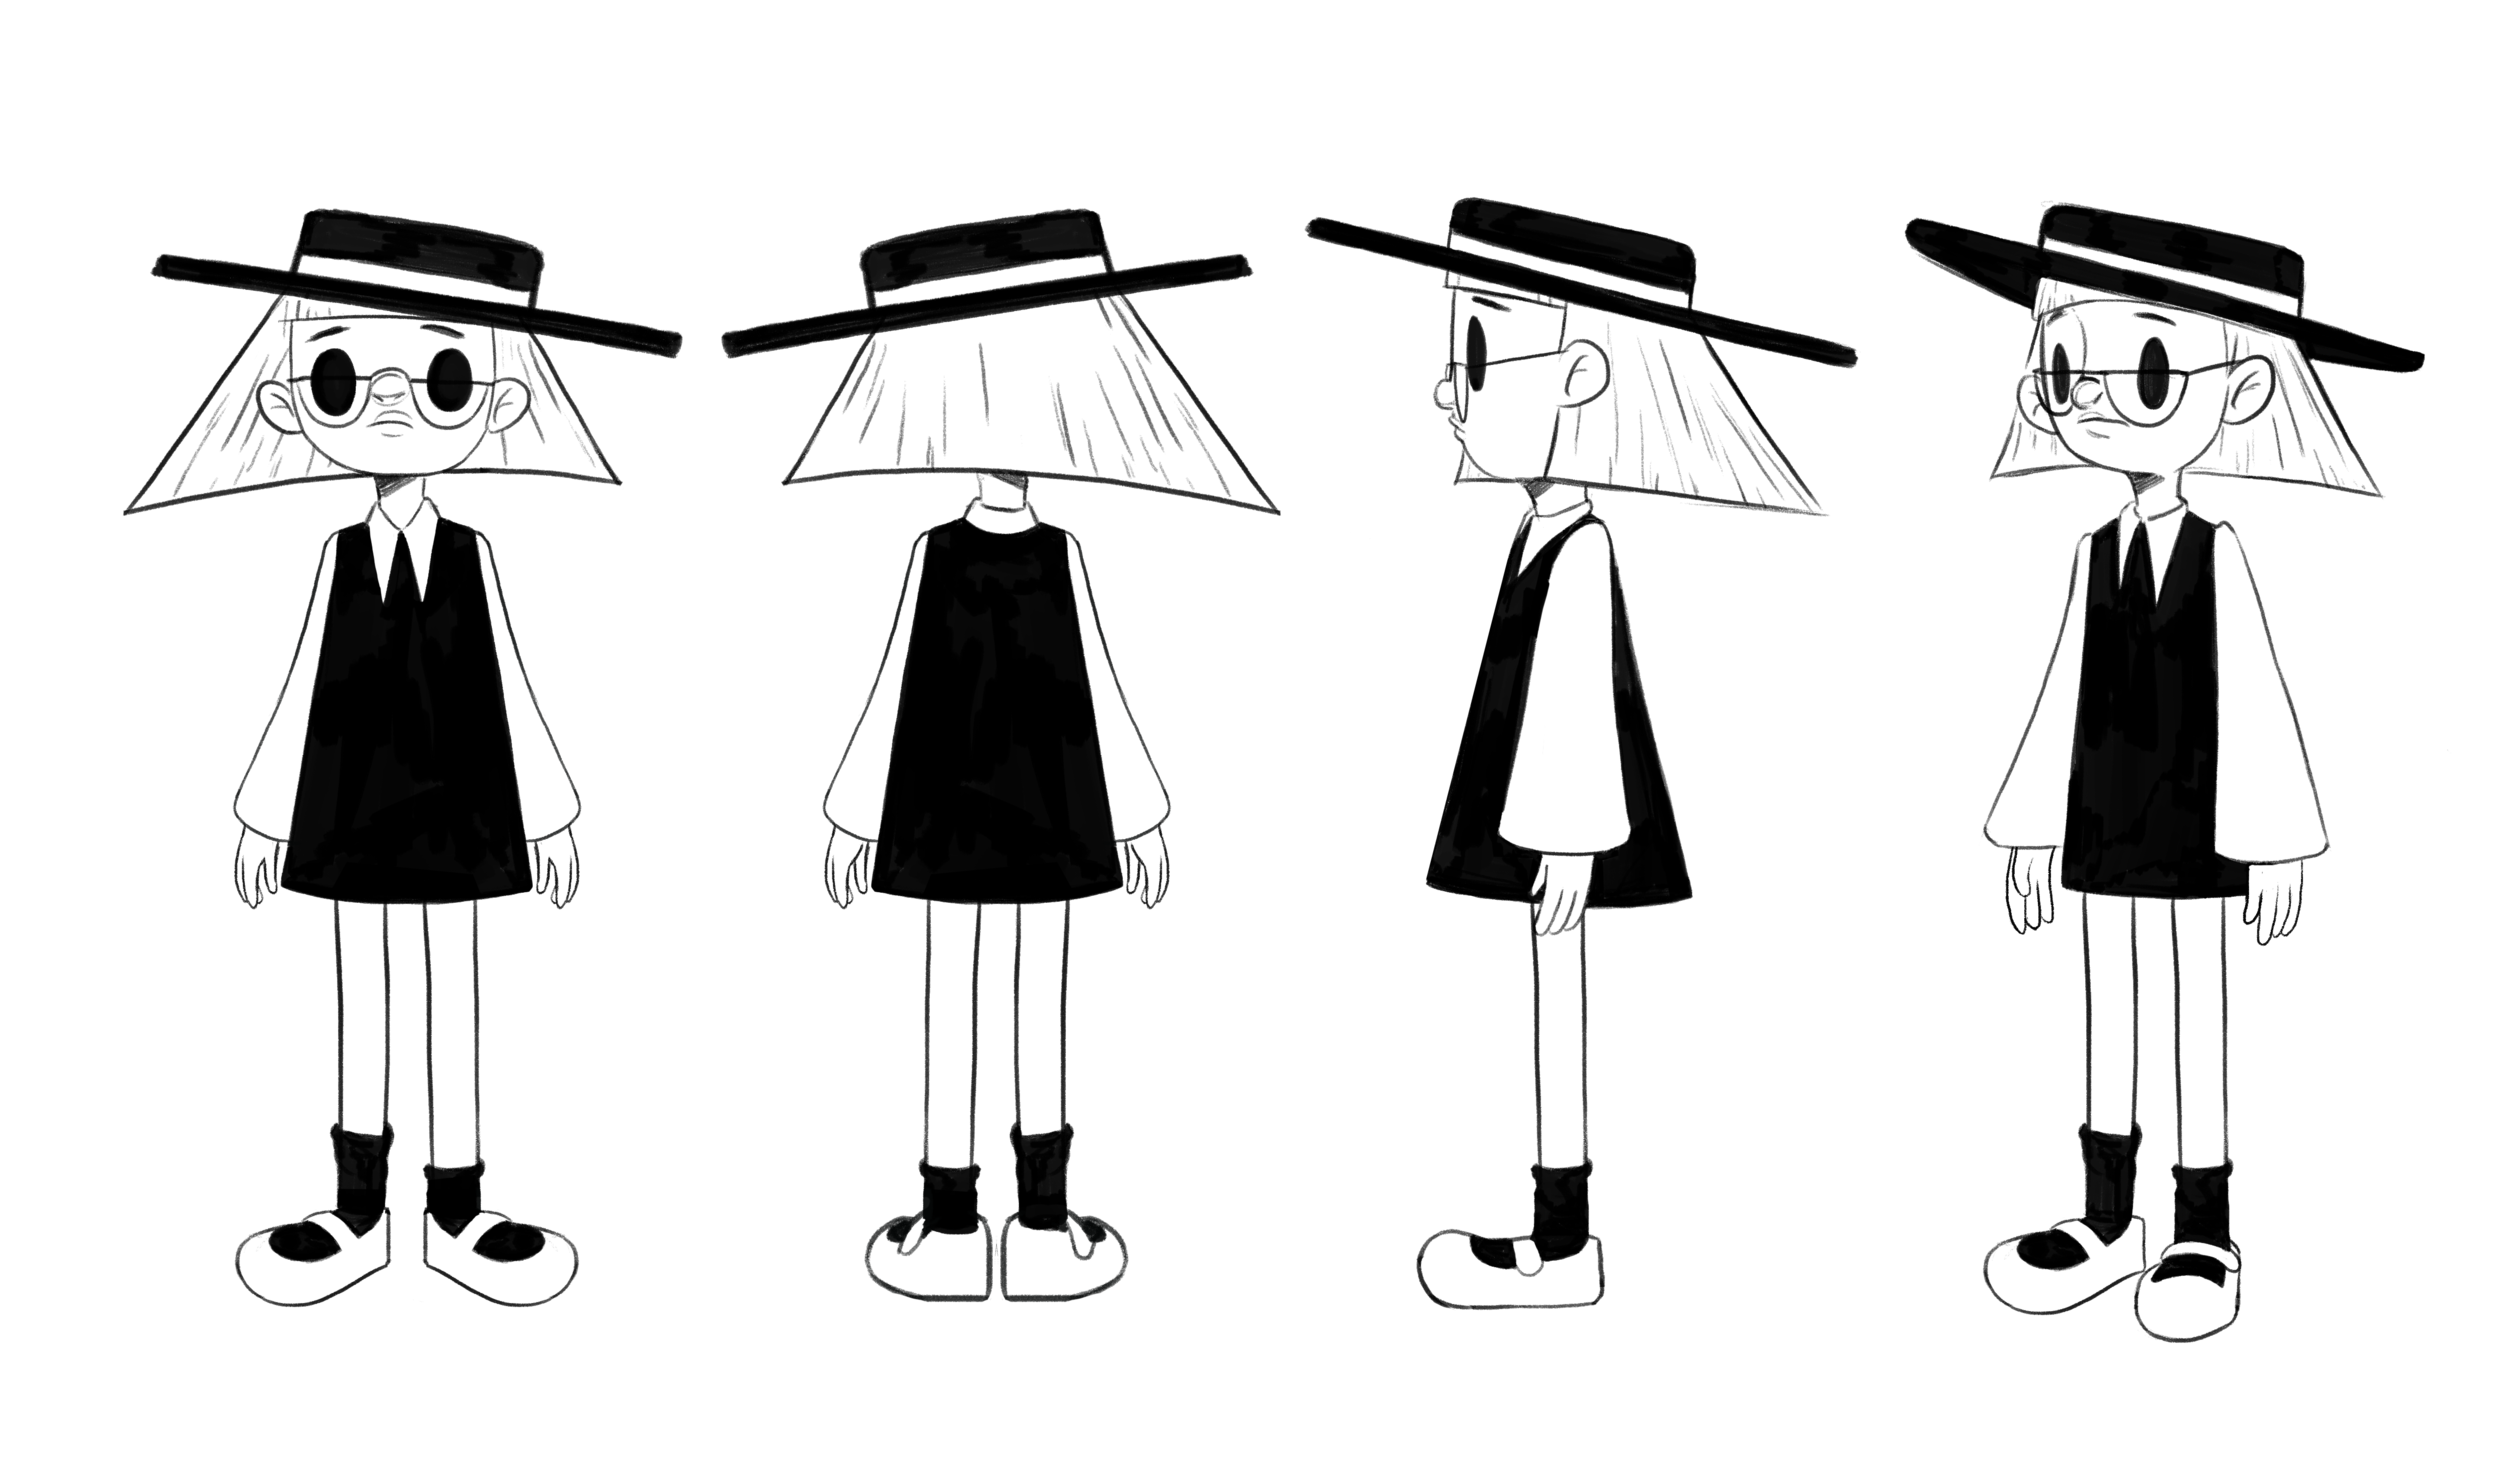 character_01_v01.png